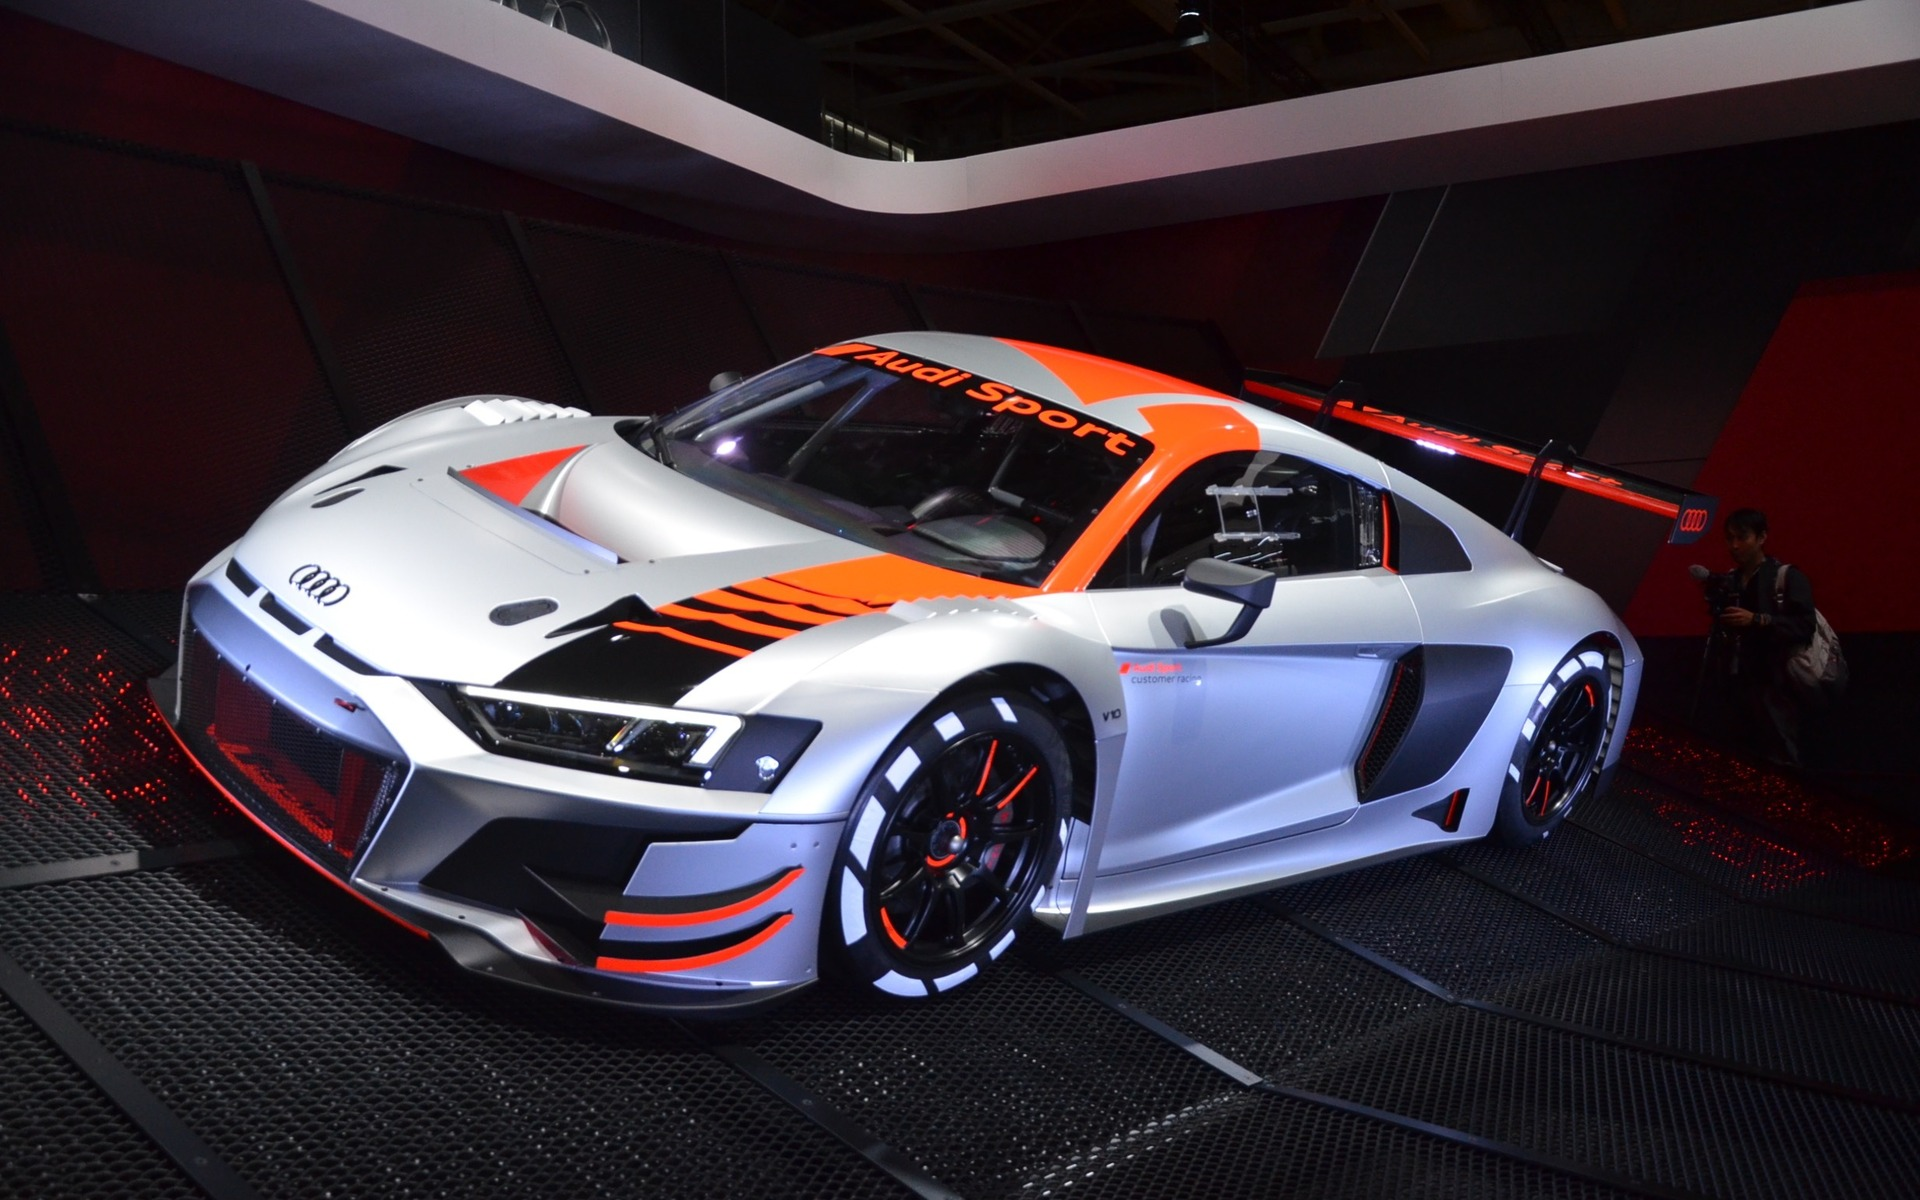 Audi R8 Lms Gt3 This Race Car Shows The New Face Of The R8 1 5